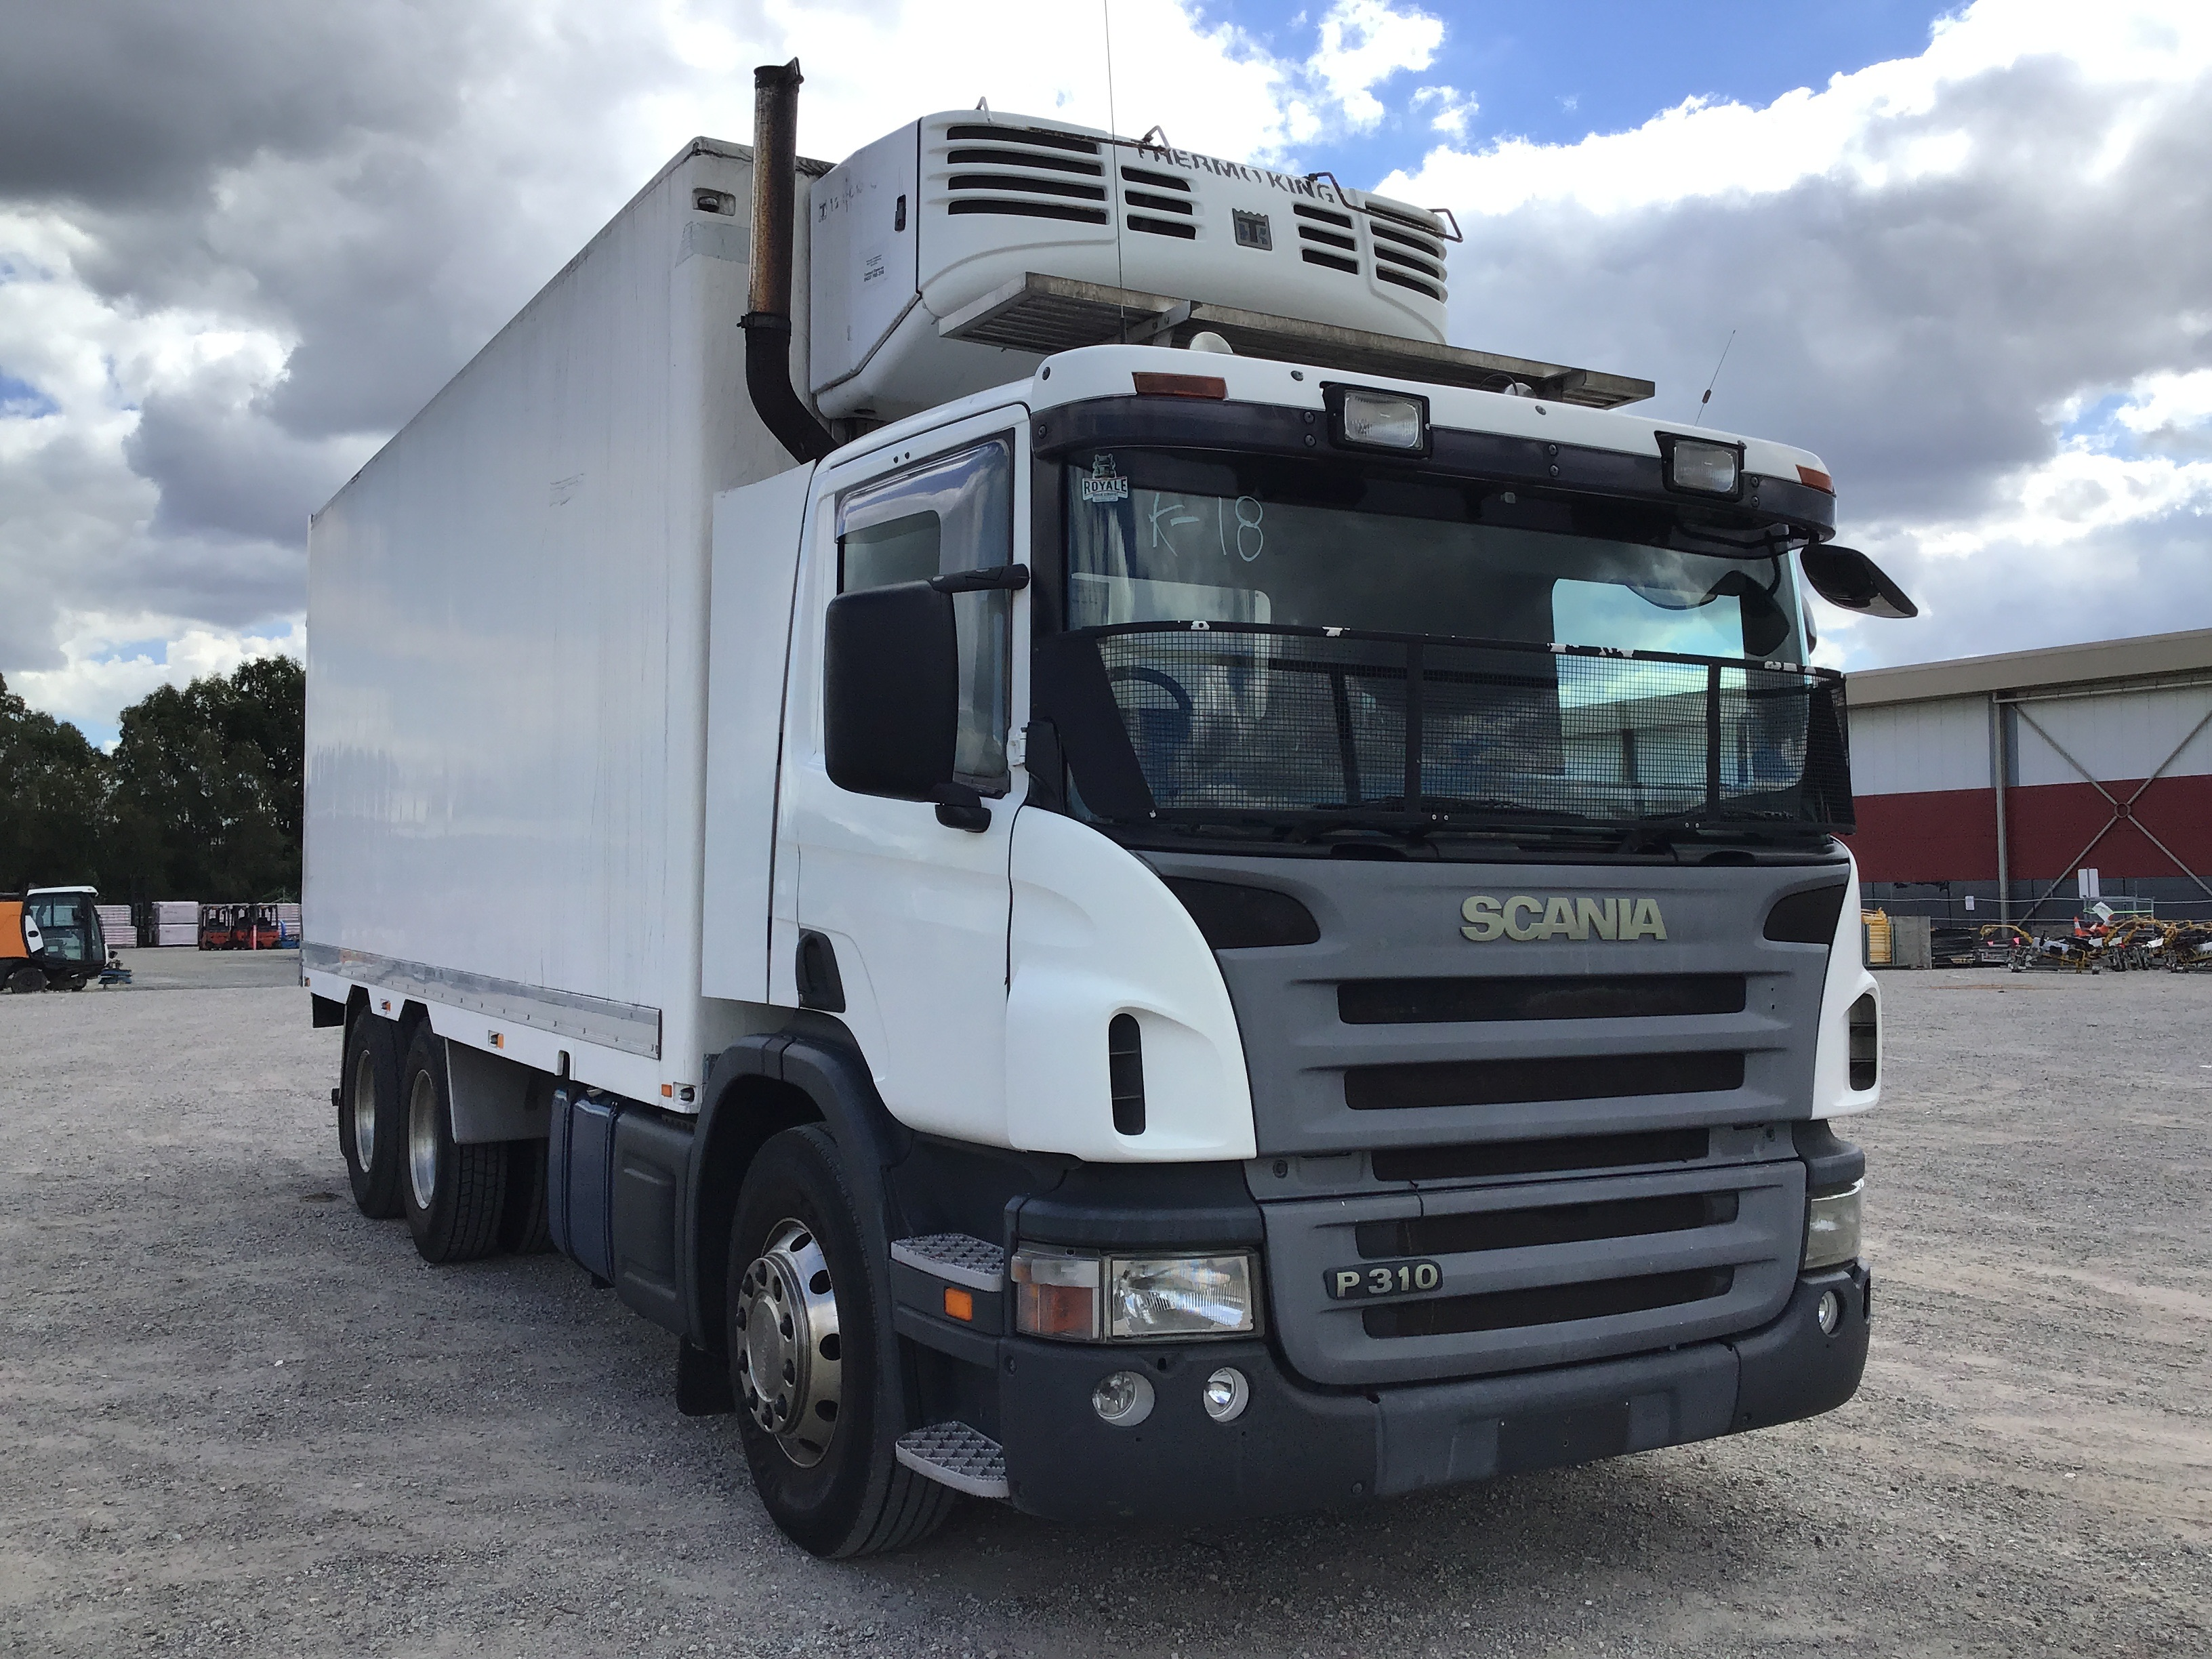 2006 SCANIA P310 6 x 4 Refrigerated Body Truck